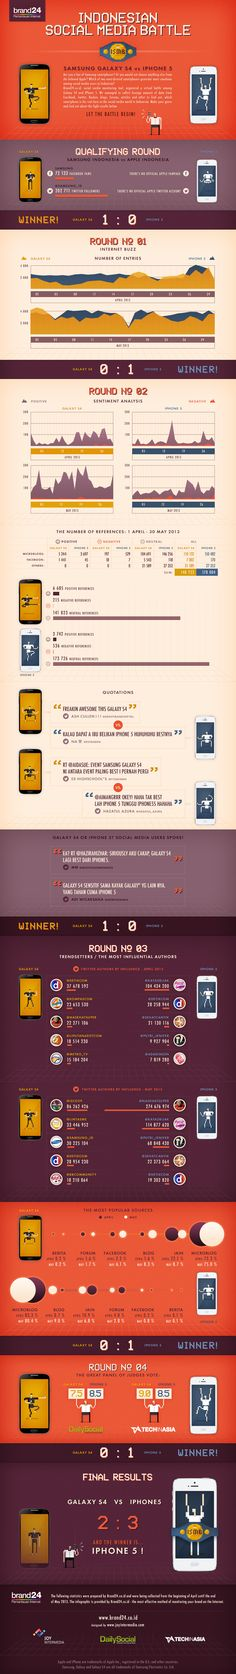 INDONESIAN SOCIAL MEDIA BATTLE.  Samsung Galaxy S4 vs. Apple iPhone5.   @Brand24id http://Brand24.co.id has organized social media battle between most popular smartphones - Samsung Galaxy S4 and iPhone 5. Let's start the fight! by @JoyIntermedia http://www.joyintermedia.com #PemantauanInternet #SocialMediaMonitoring #InternetMonitoring #BrandMonitoring #Samsung #Apple #GalaxyS4 #iPhone5 #Brand24 #JoyIntermedia